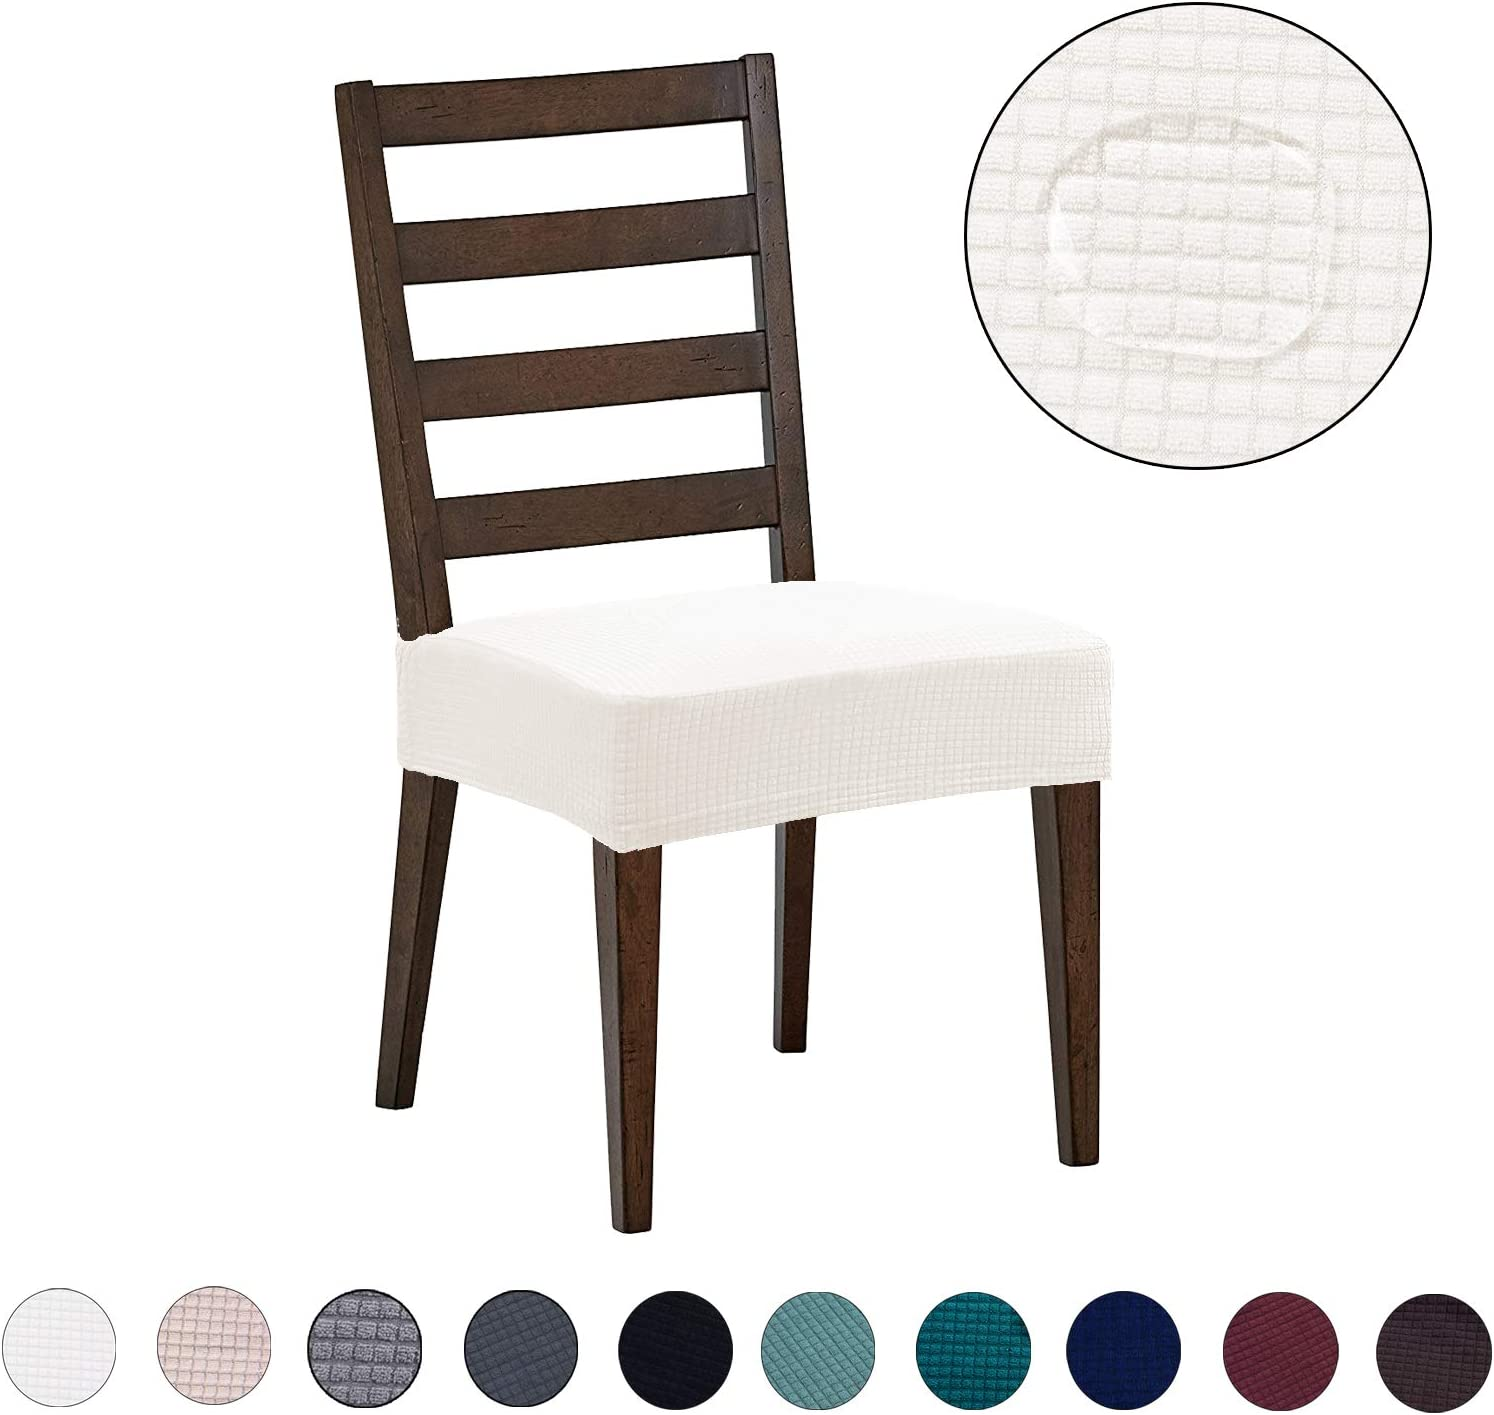 Dining Chair Covers 2 Pack Water Repellent Easy To Install High Stretch Dining Room Chair Seat Slipcover Protector Shield For Dog Cat Pets Off White Amazon Co Uk Kitchen Home